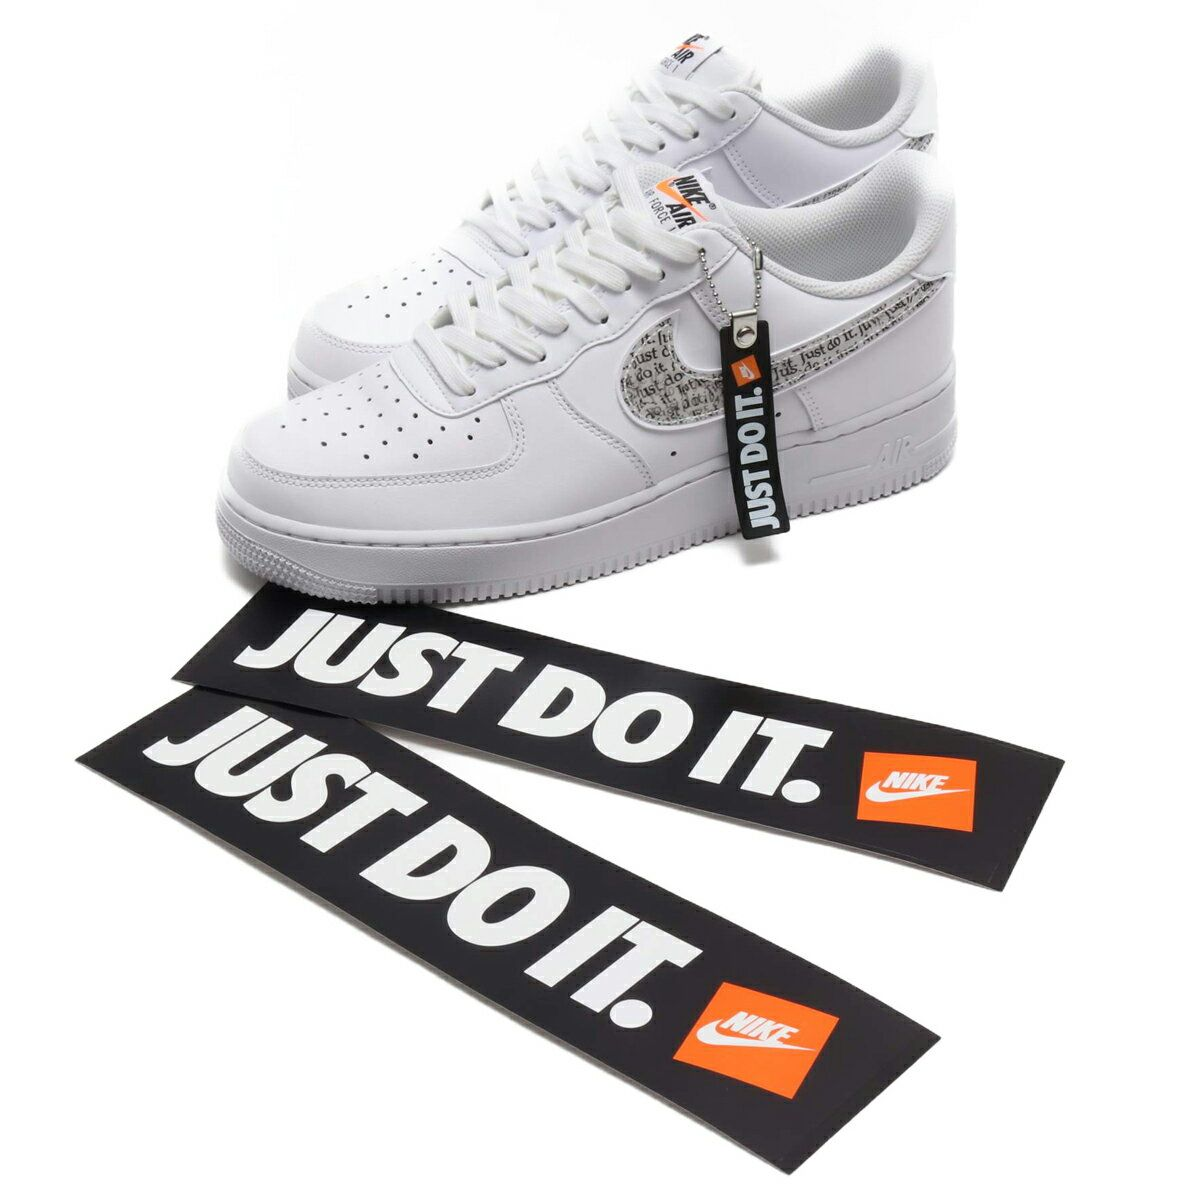 楽天 Nike Air Force 1 07 Lv8 Jdi Lntc ナイキ エア フォース 07 Lntc White White Black Total Orange 18fa Iの売れ筋人気ランキング商品 Sneakers Nike Nike Air Force